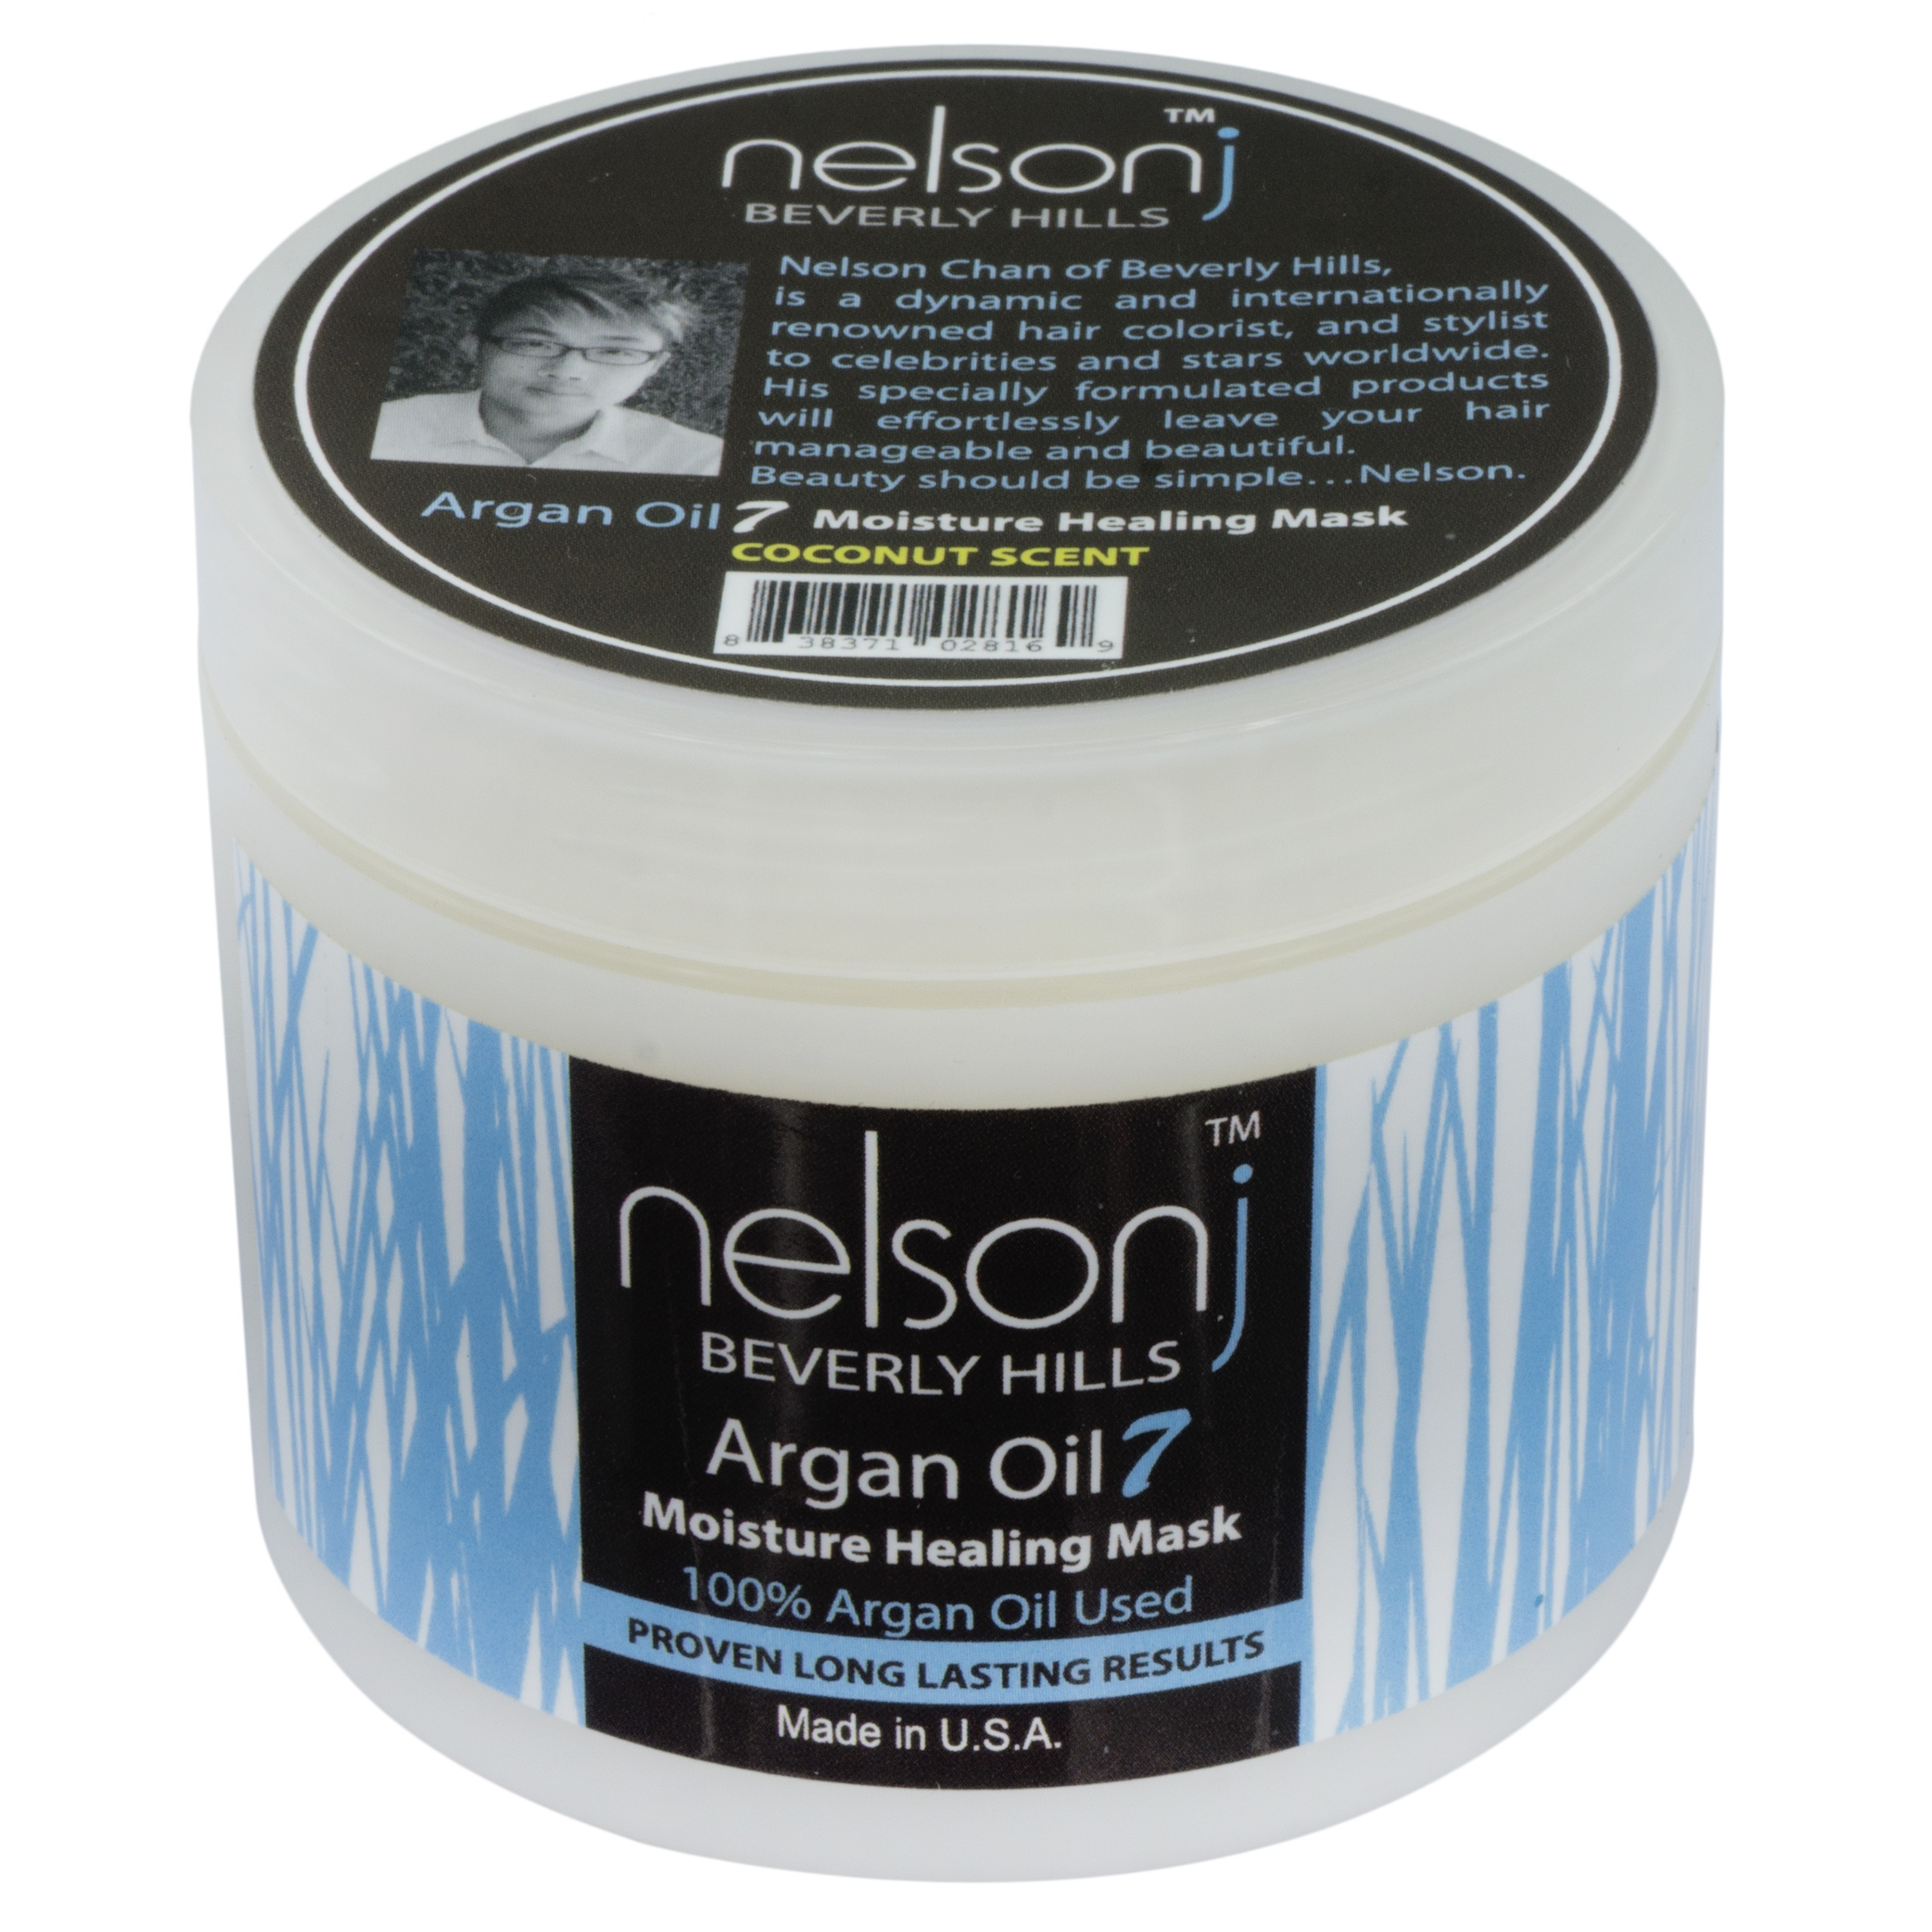 Argan Oil 7 Moisture Healing Mask - Coconut Scent 4oz